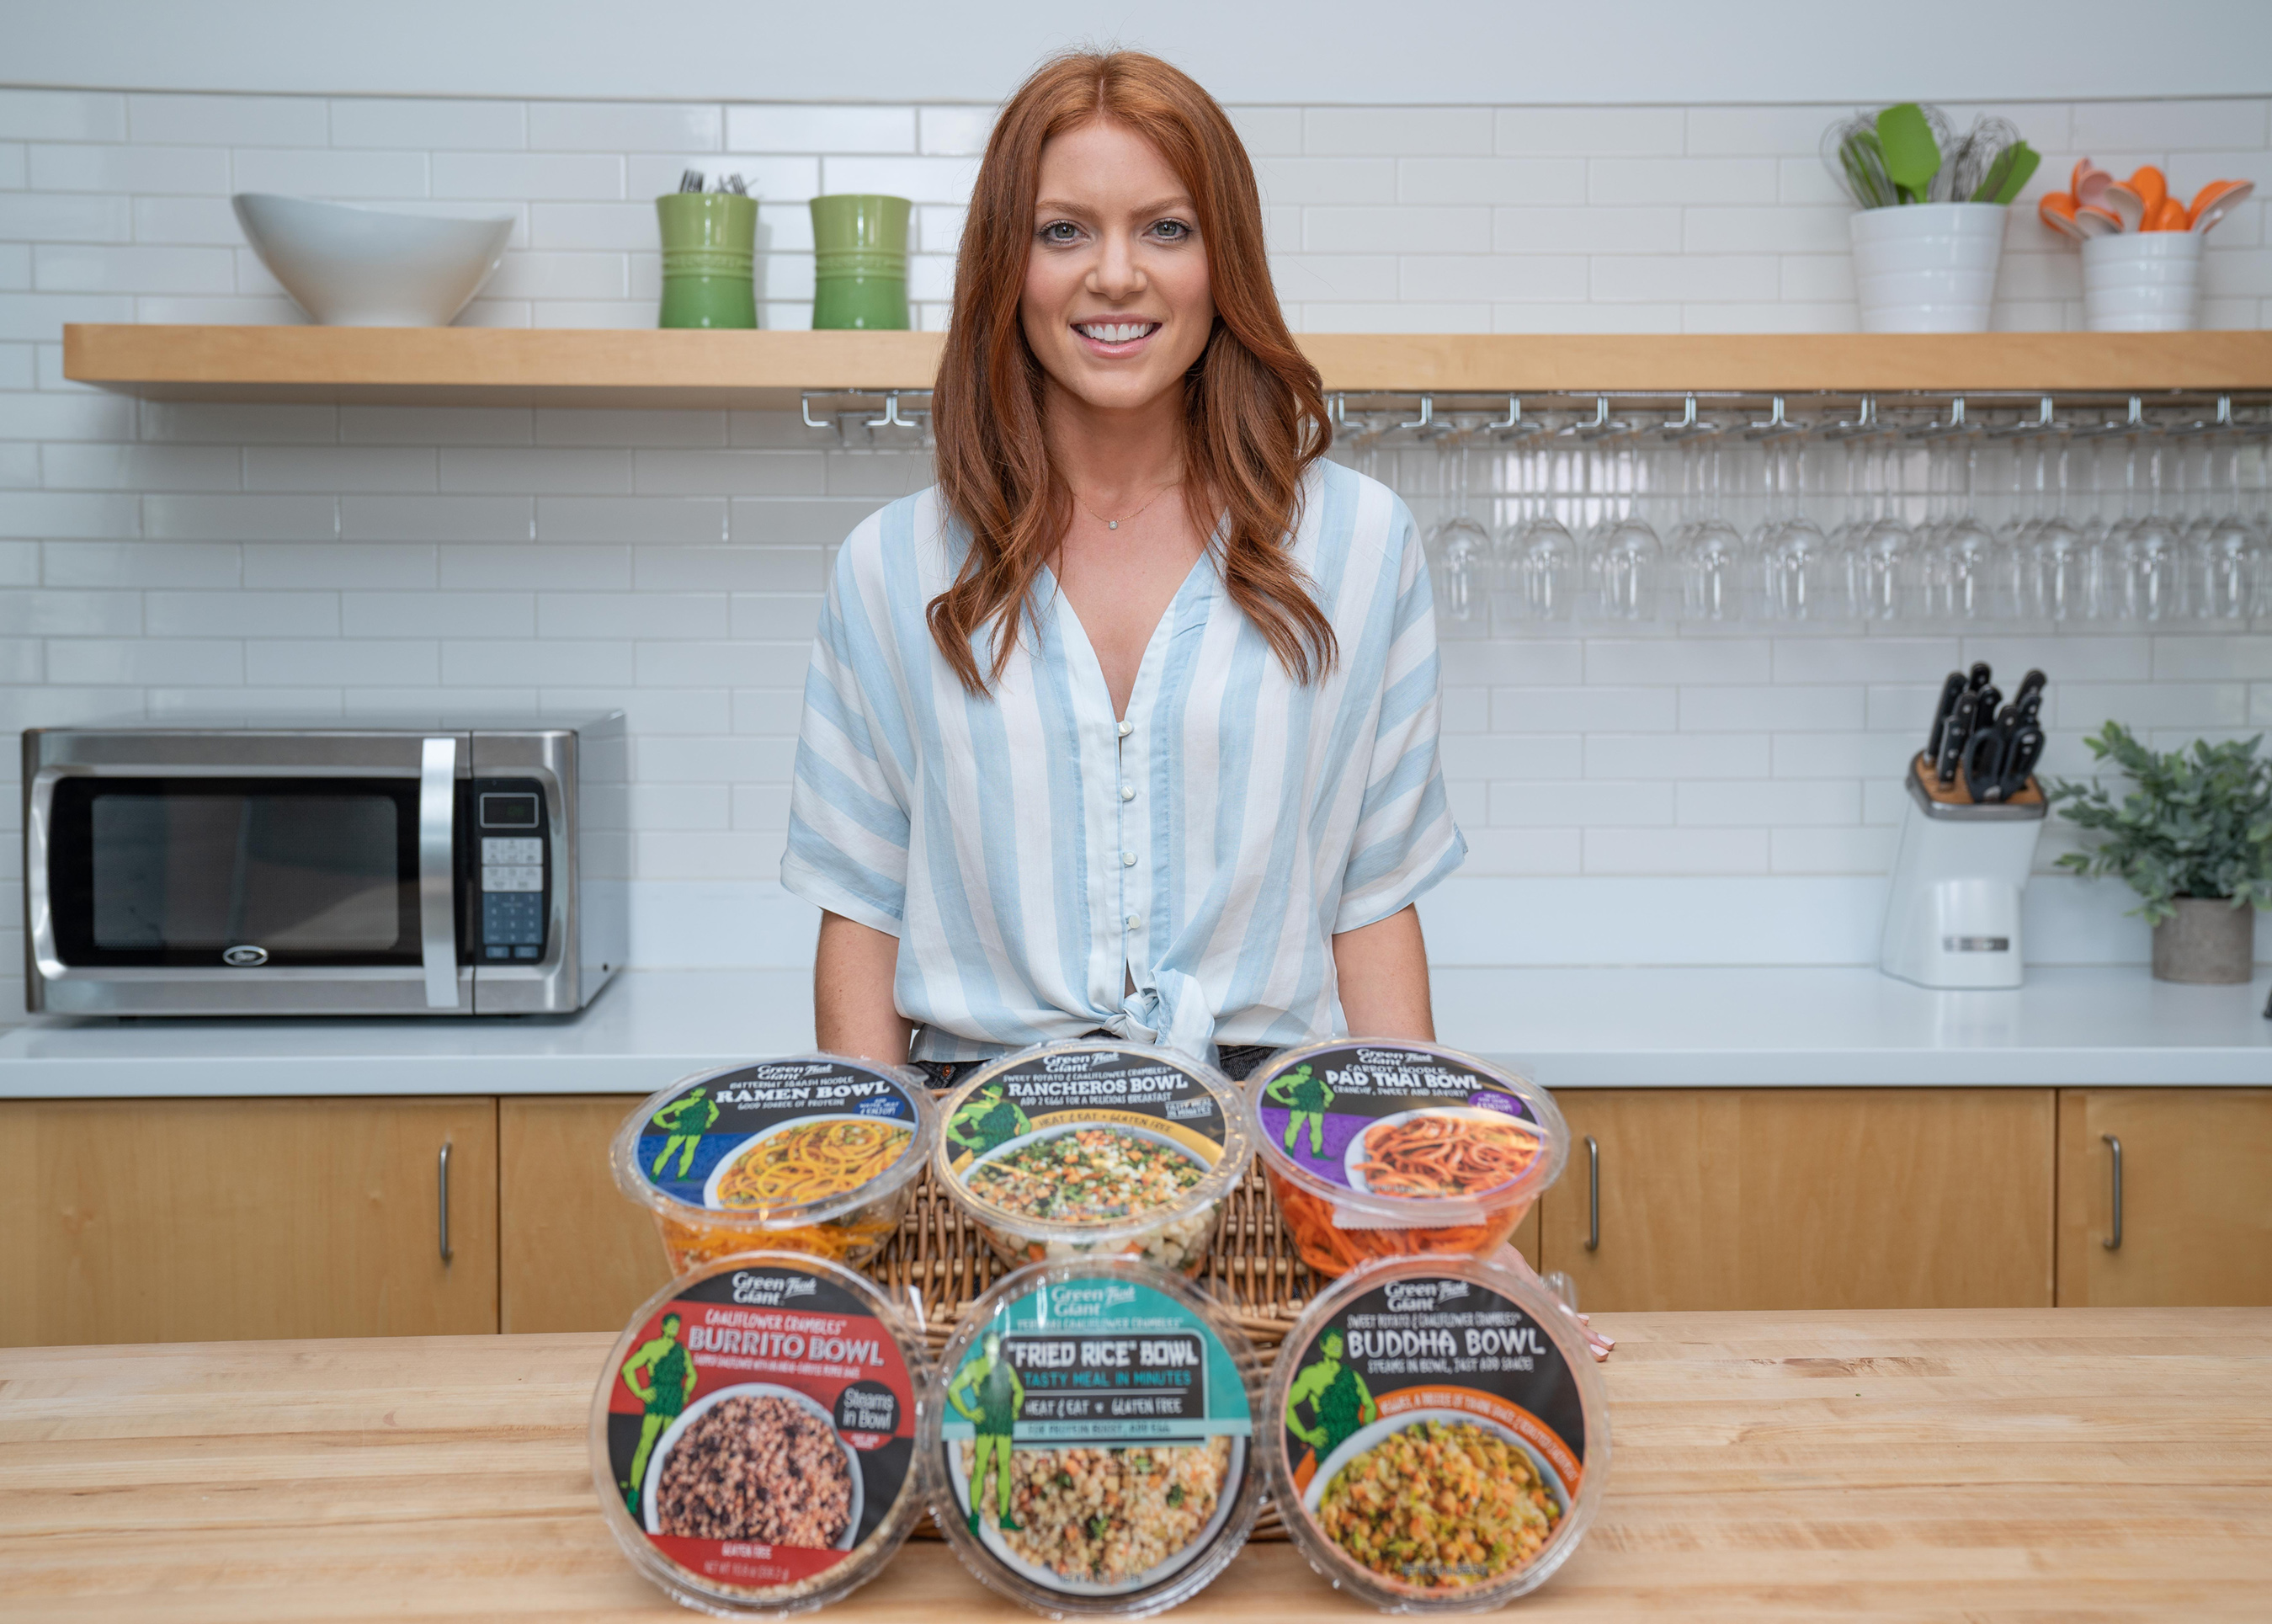 Amanda Lemein, MS, RD, with new Green Giant Fresh Vegetable Meal Bowls.